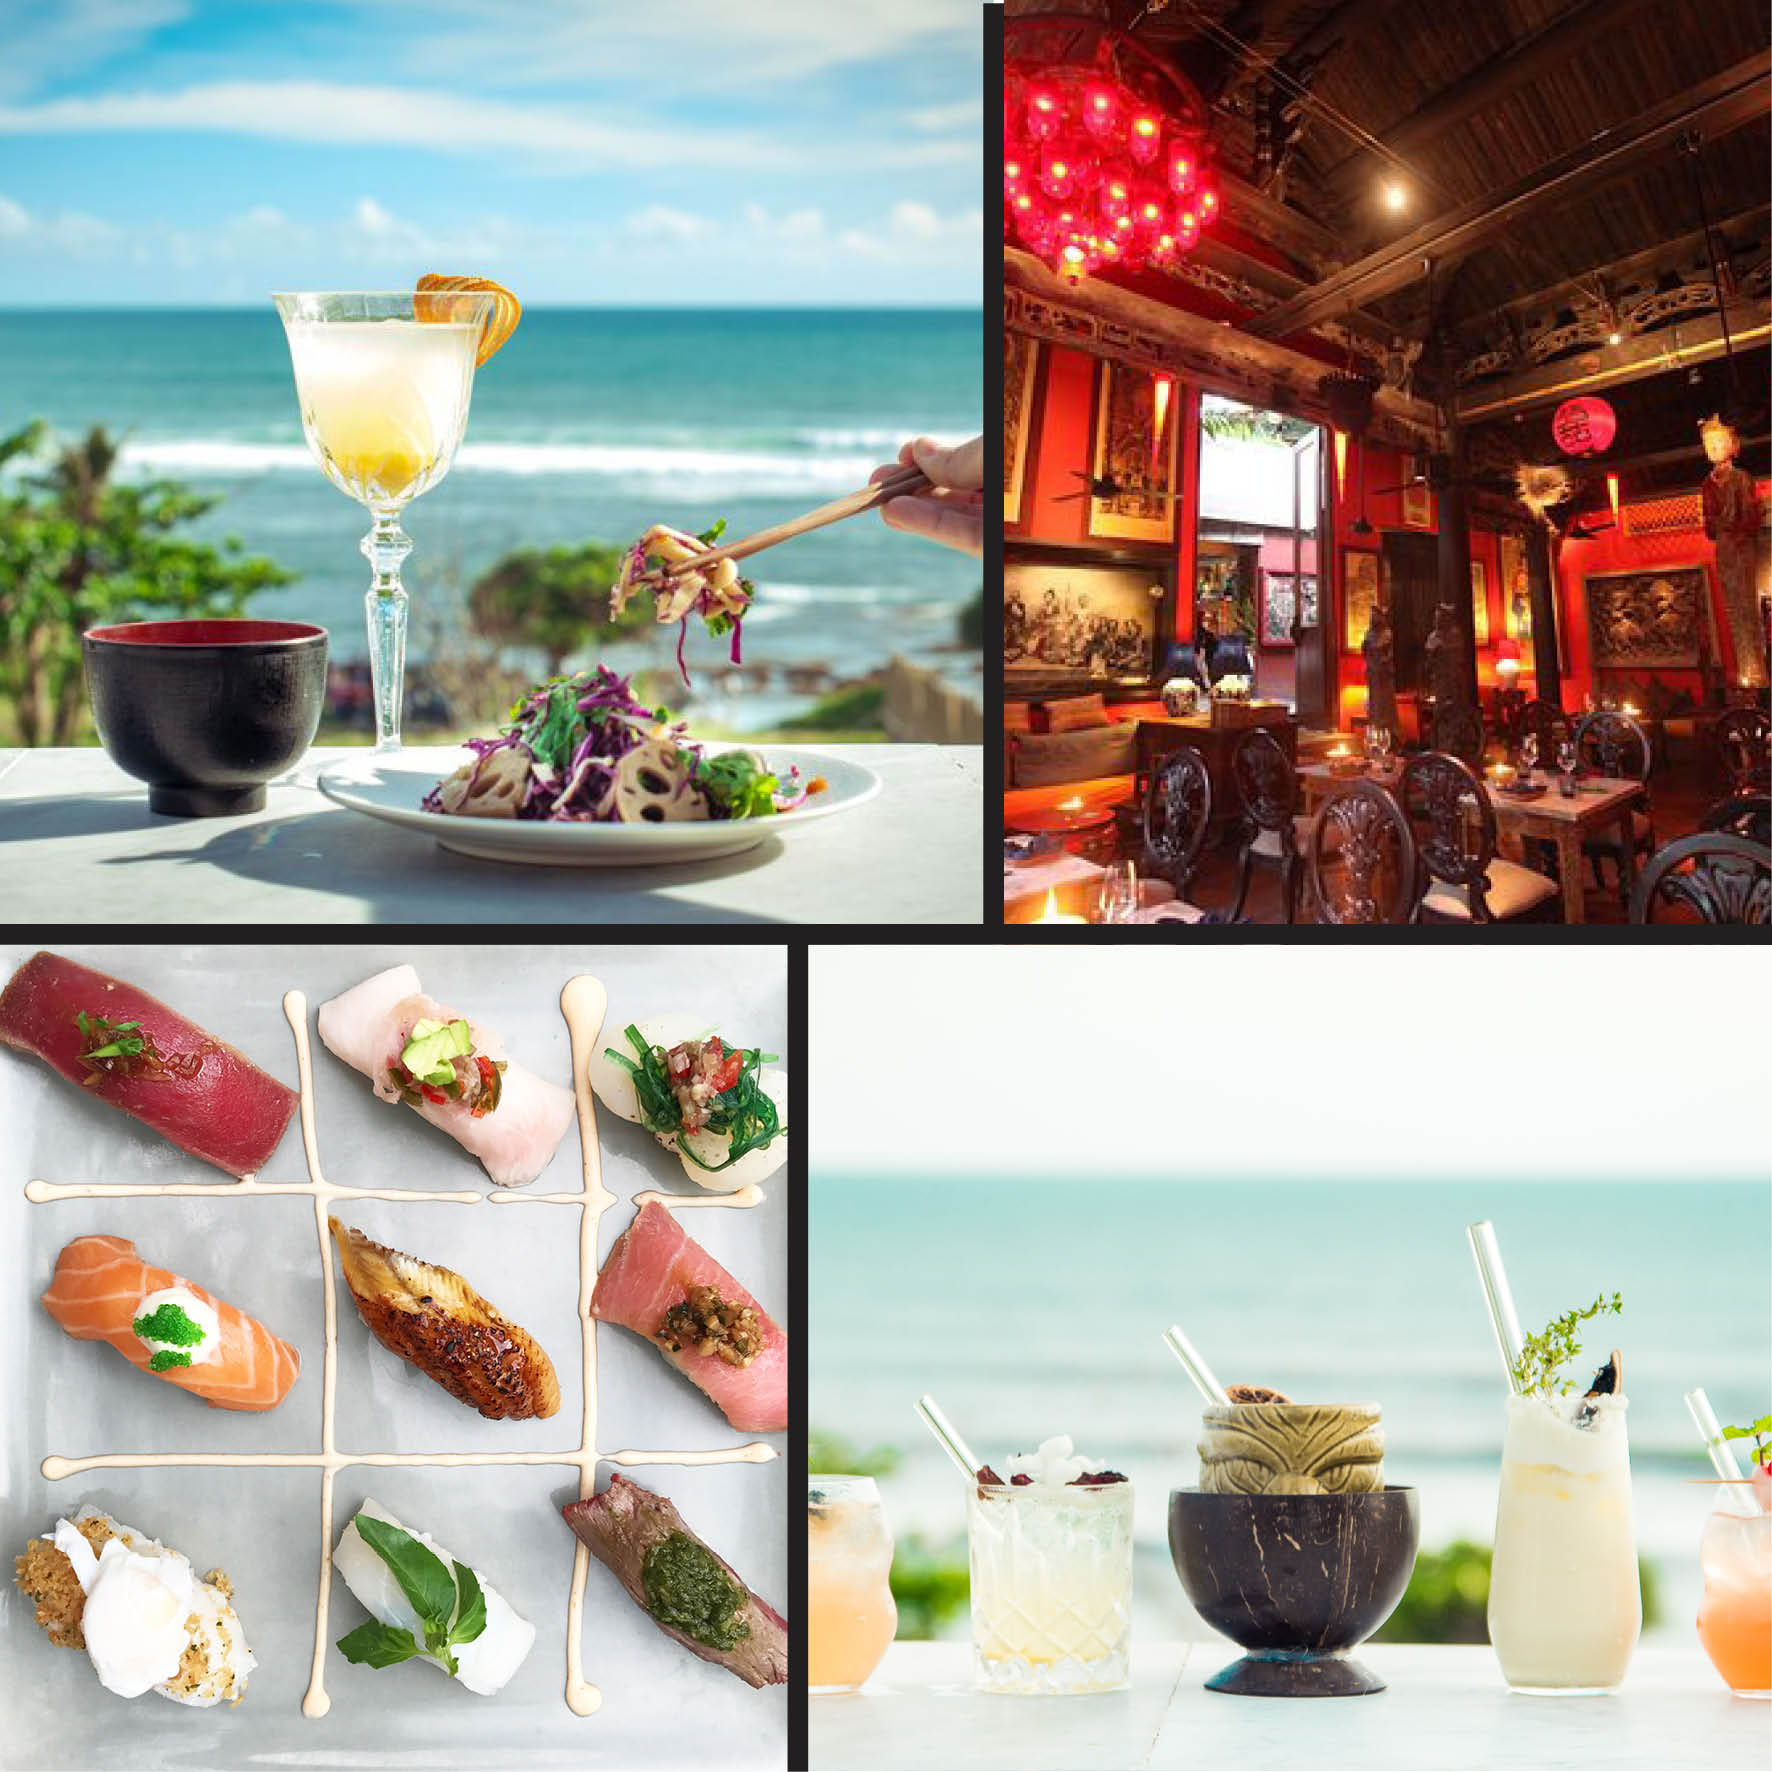 Best Restaurants in Canggu